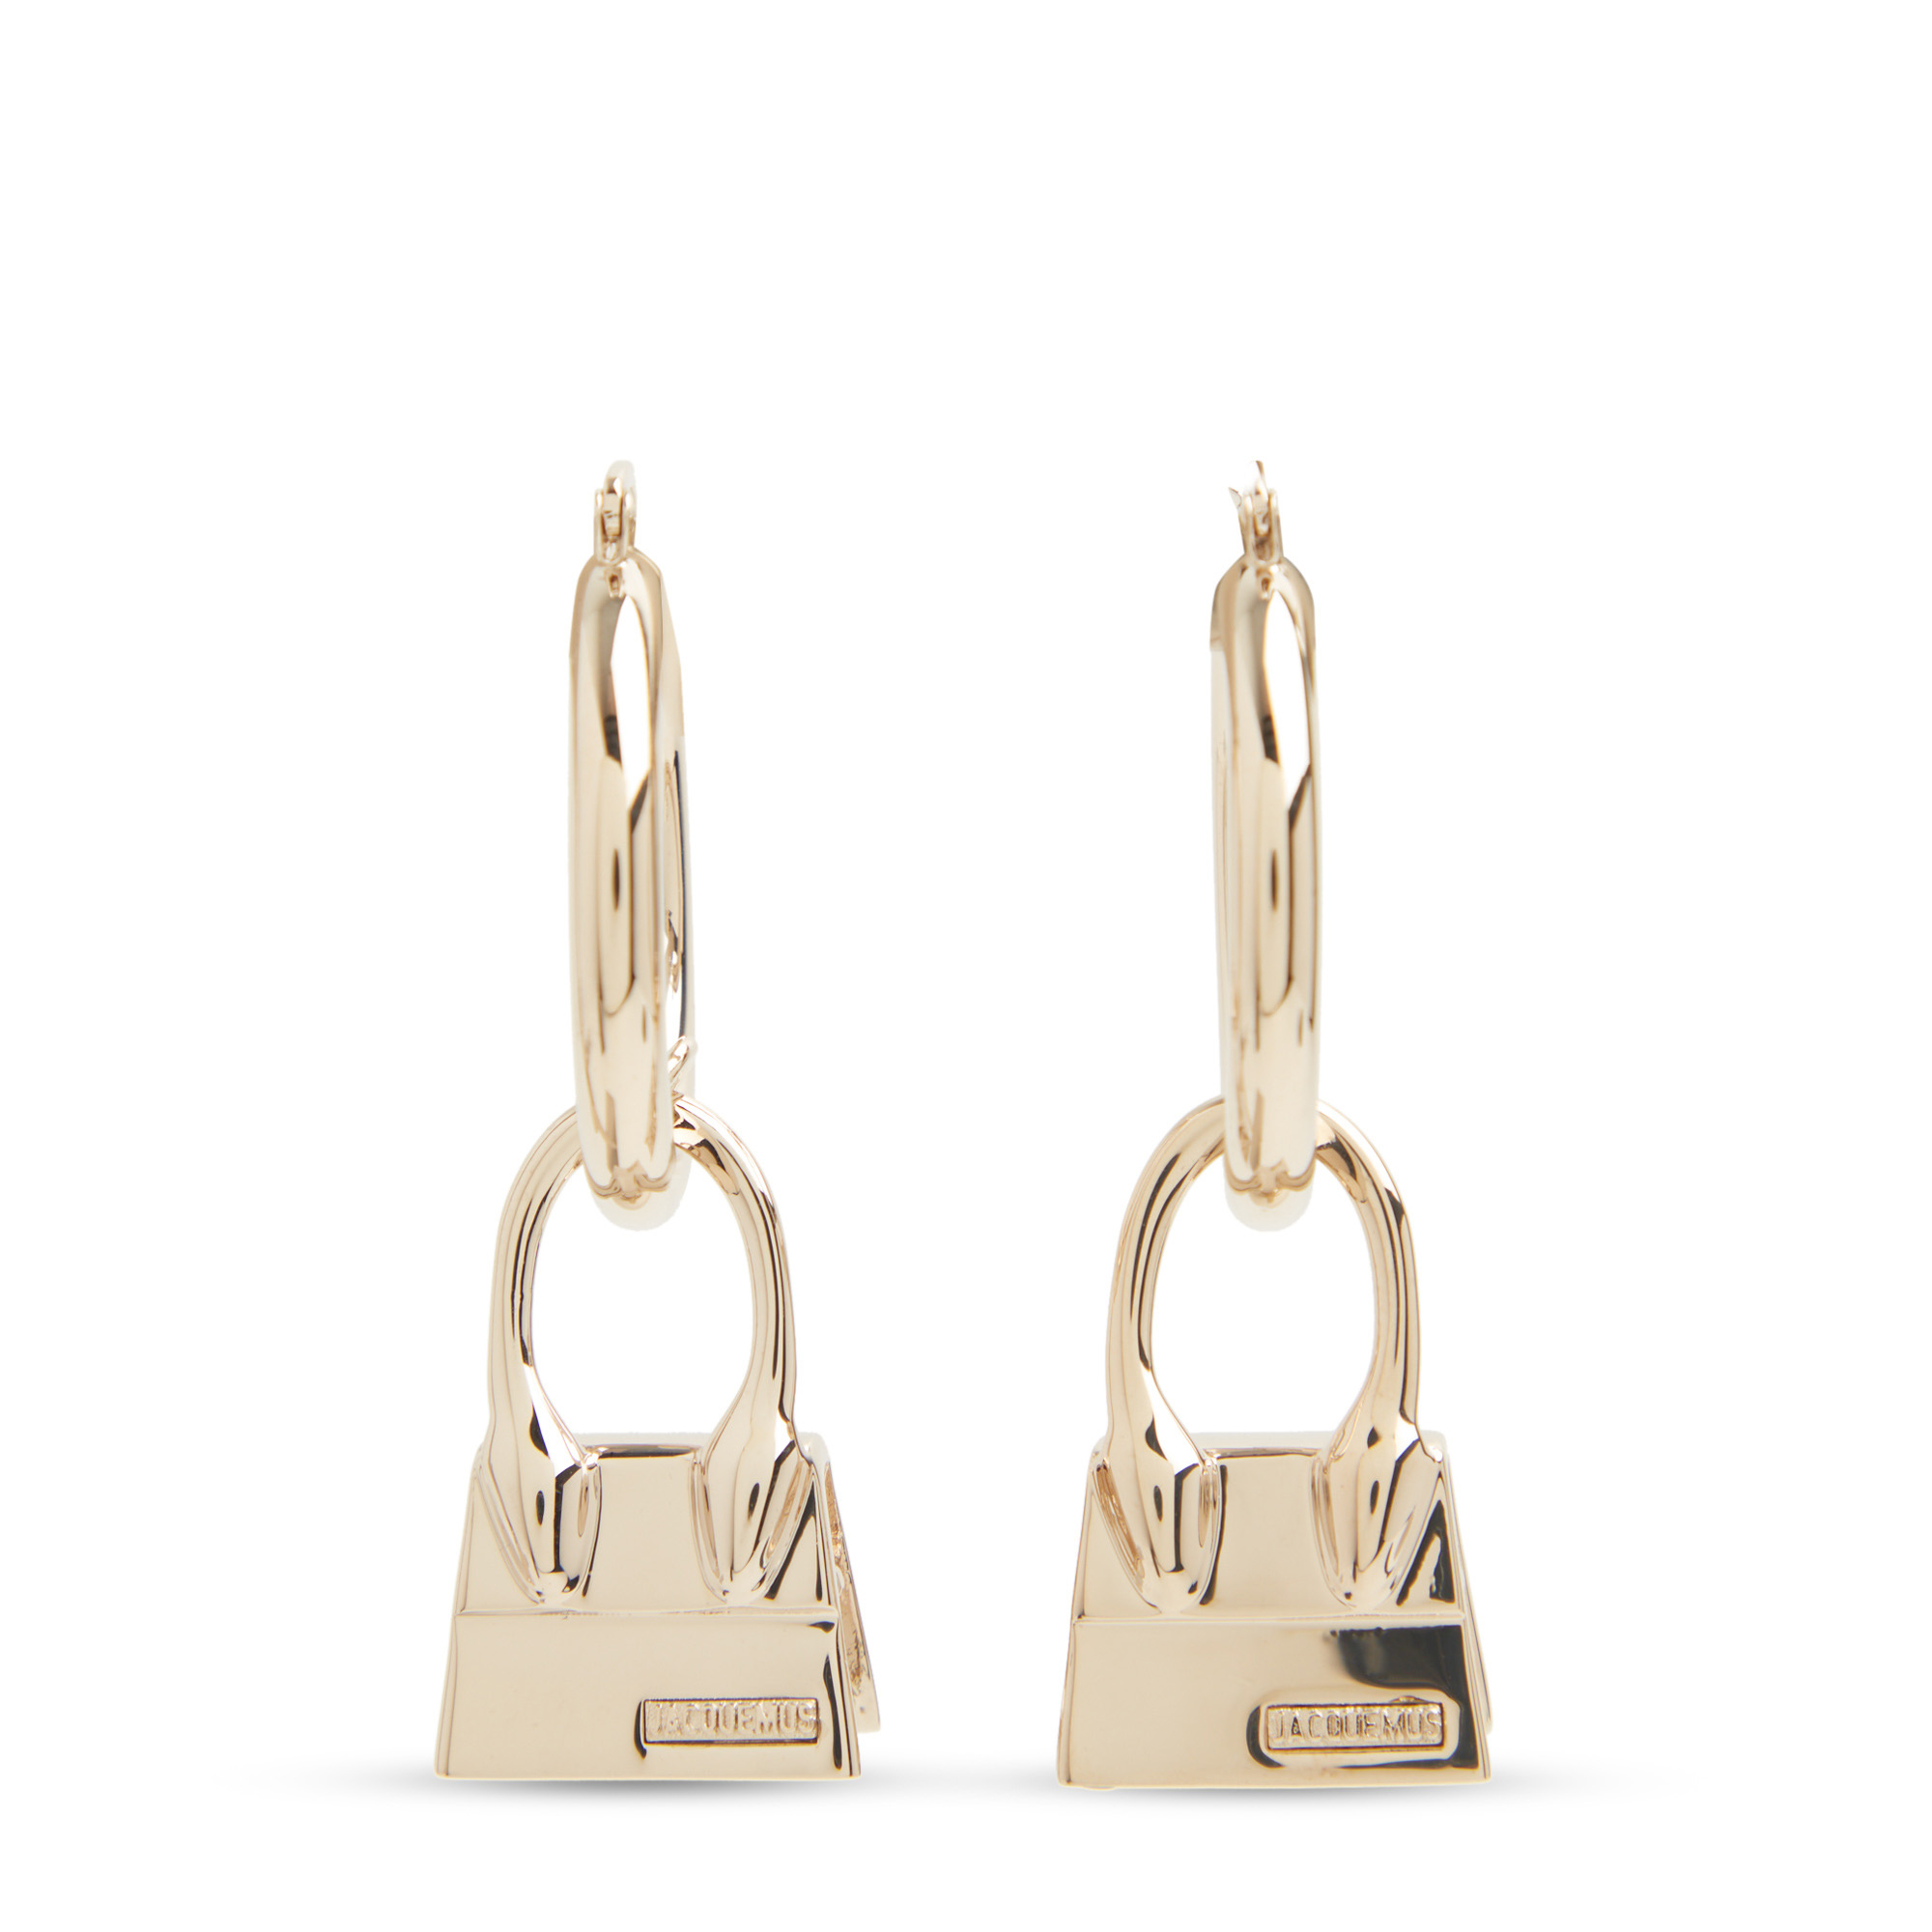 Les Creoles Chiquito earrings